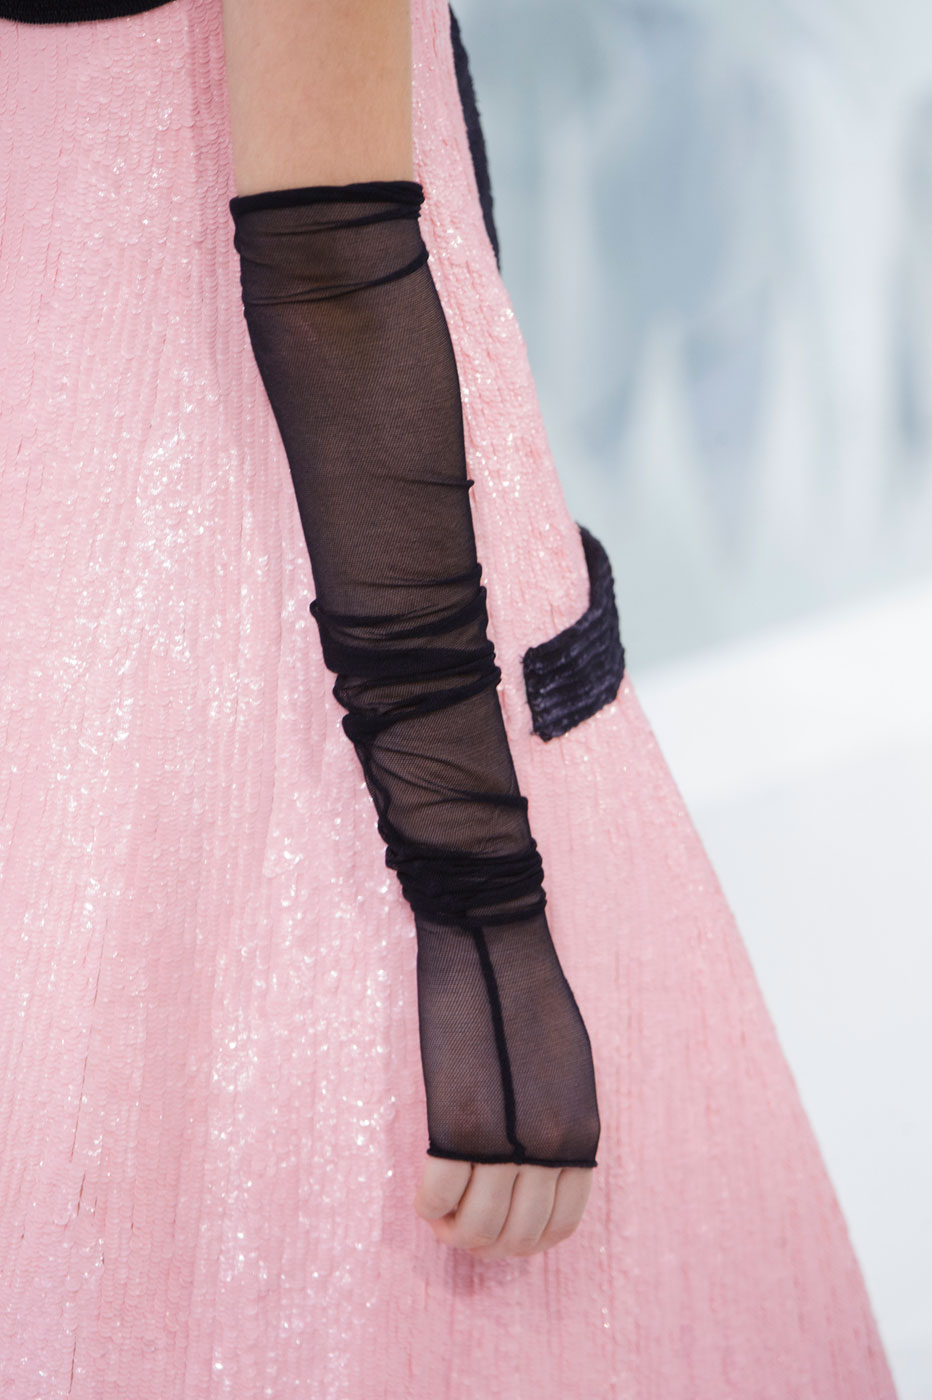 Chanel-fashion-runway-show-close-ups-haute-couture-paris-spring-summer-2015-the-impression-110